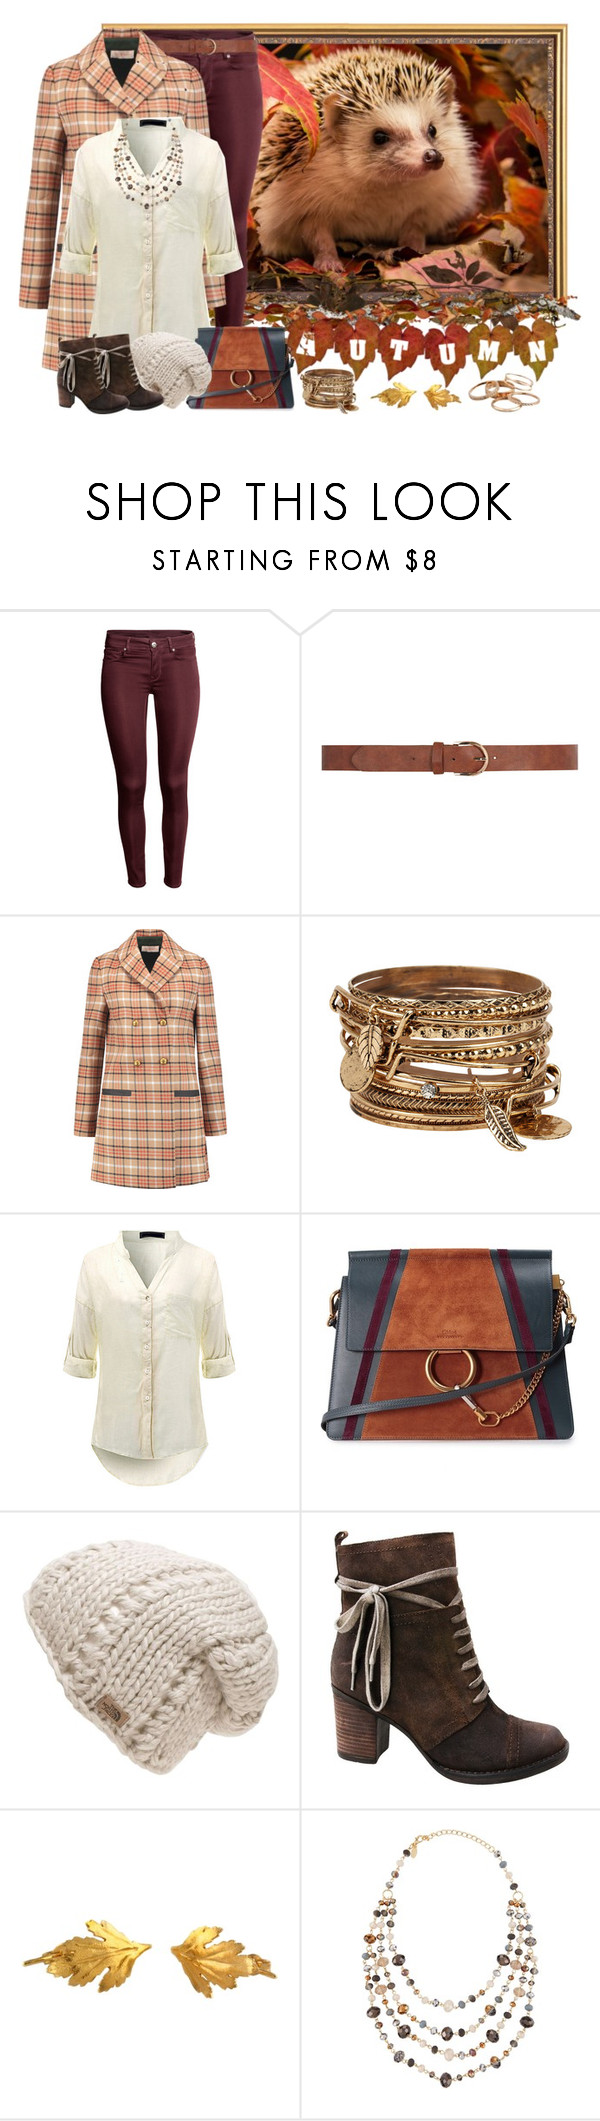 """Autumn Hedgehog"" by pink-quartz ❤ liked on Polyvore featuring Dorothy Perkins, Tory Burch, ALDO, Chloé, The North Face, Miz Mooz, Alex Monroe, Emily & Ashley and Kendra Scott"